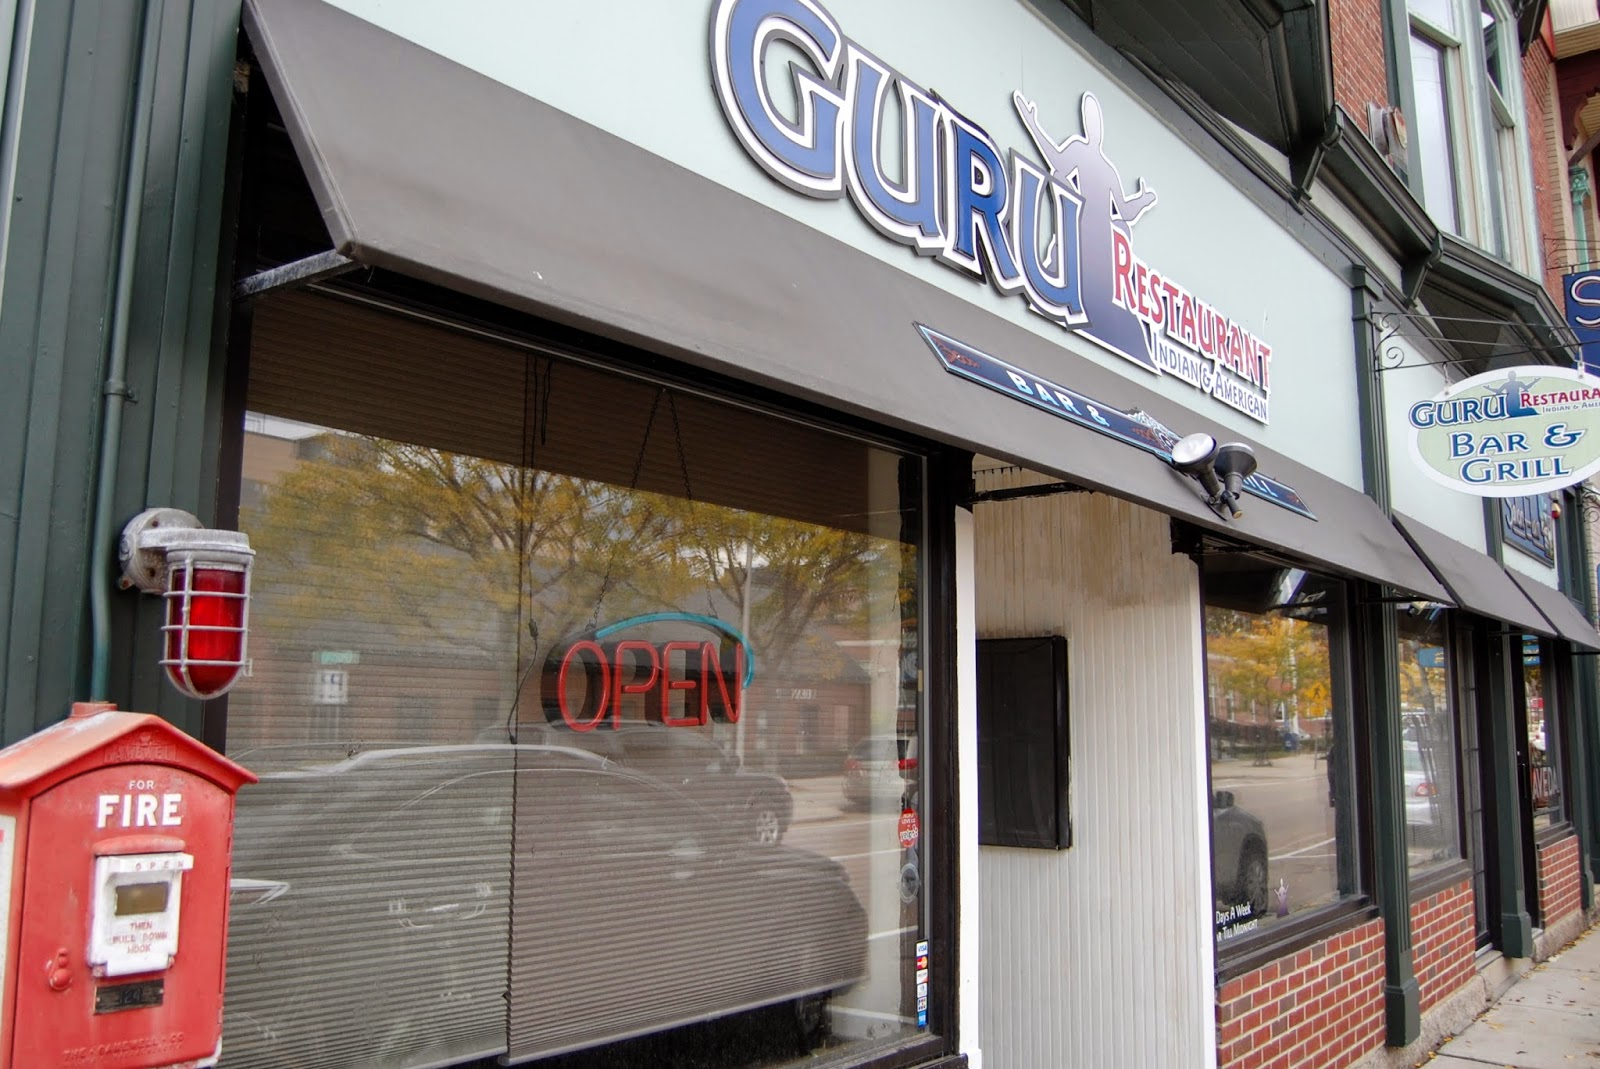 The 'open sign' will get lit up in January or February at Guru